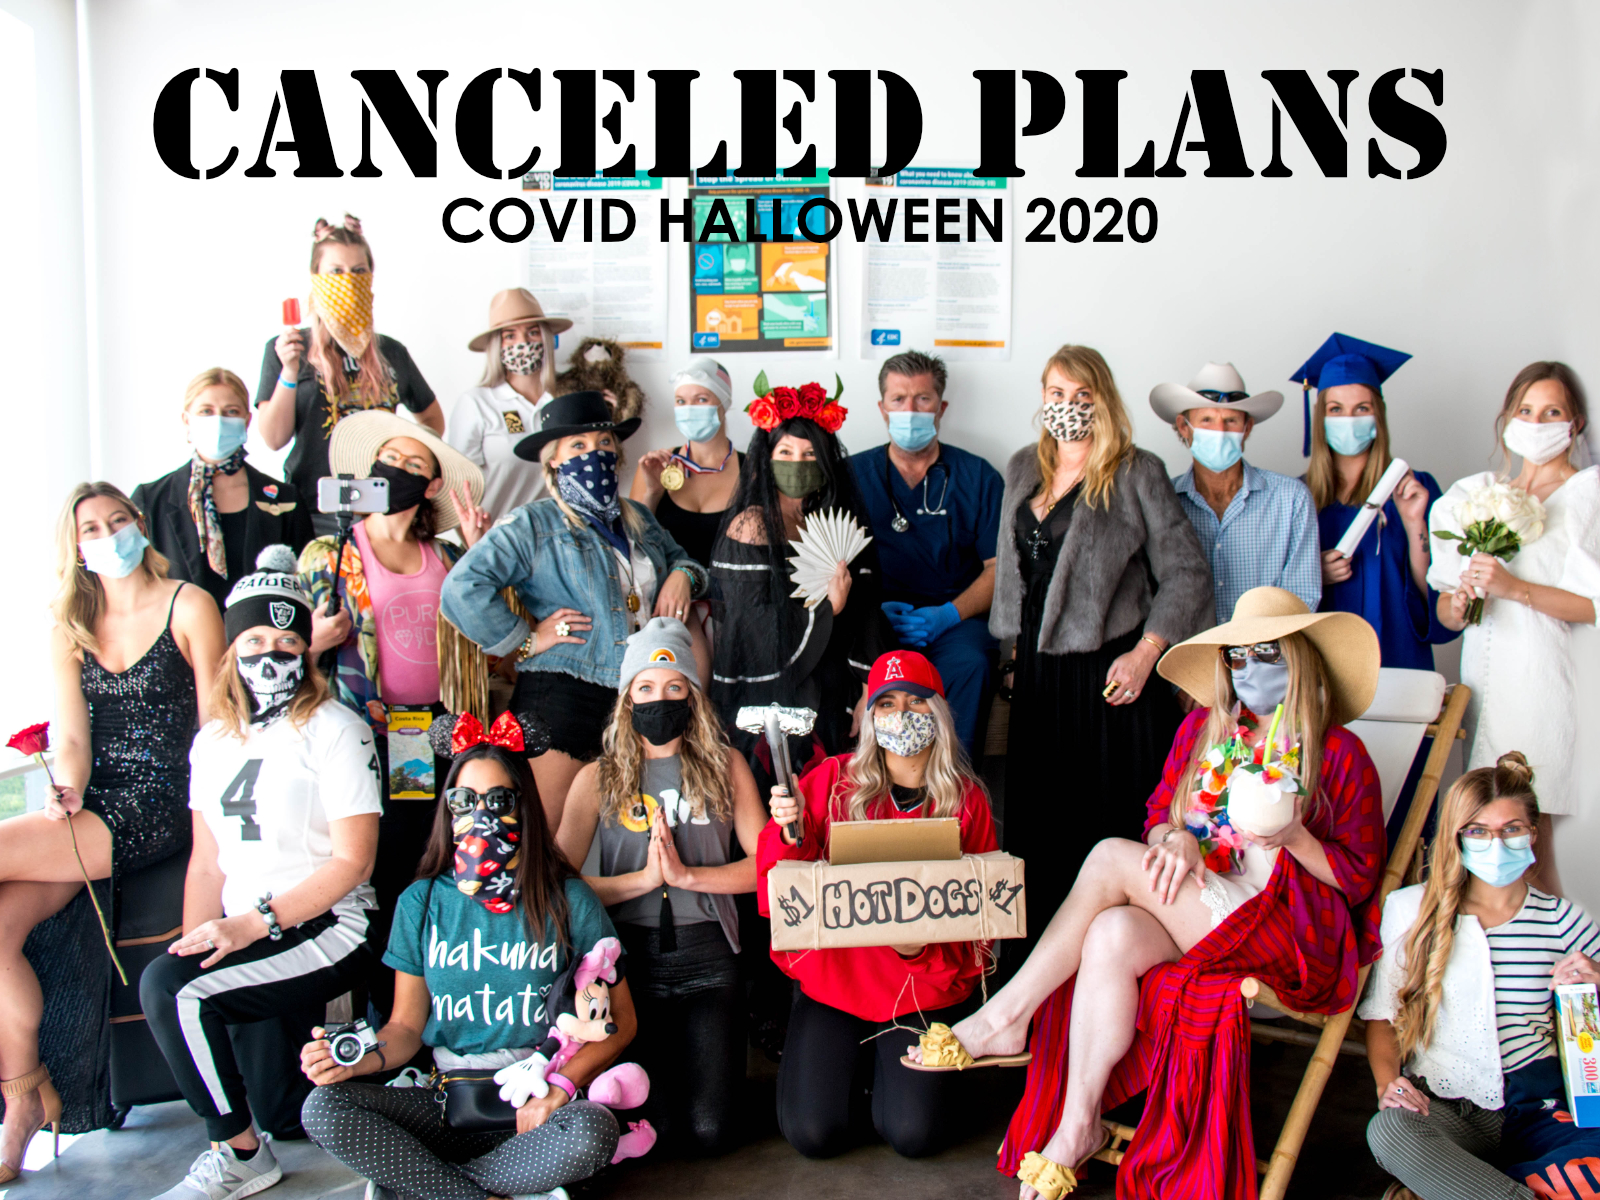 BLACKBAND_DESIGN_COVID_HALLWEEN_2020-TEAM2